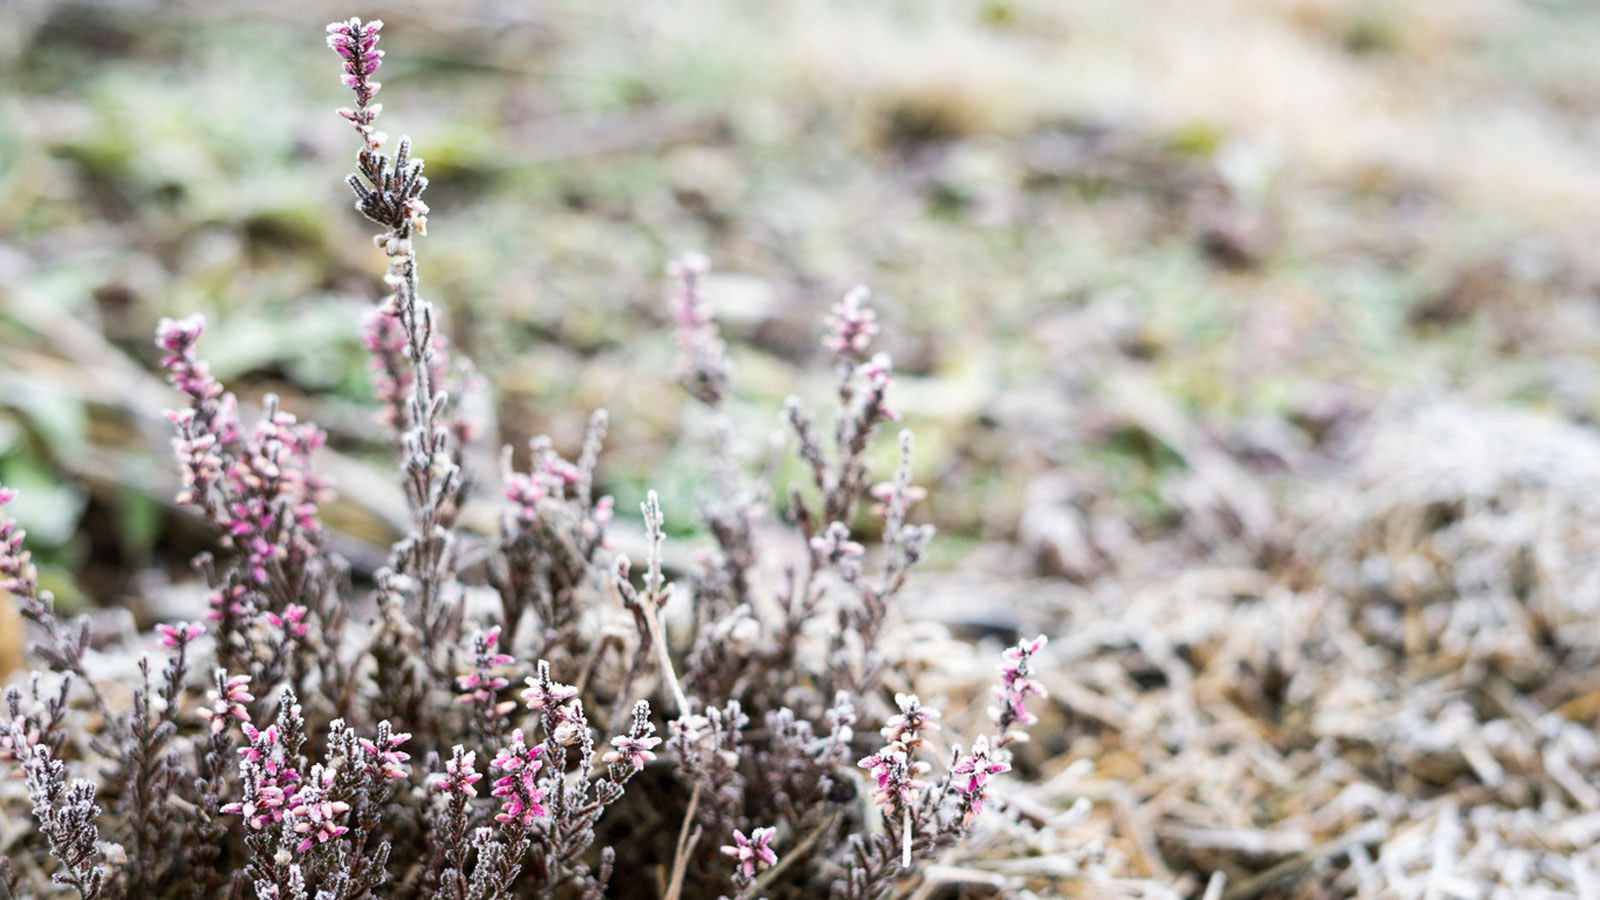 Winter Heather Varieties How To Grow Heather That Flowers In Winter